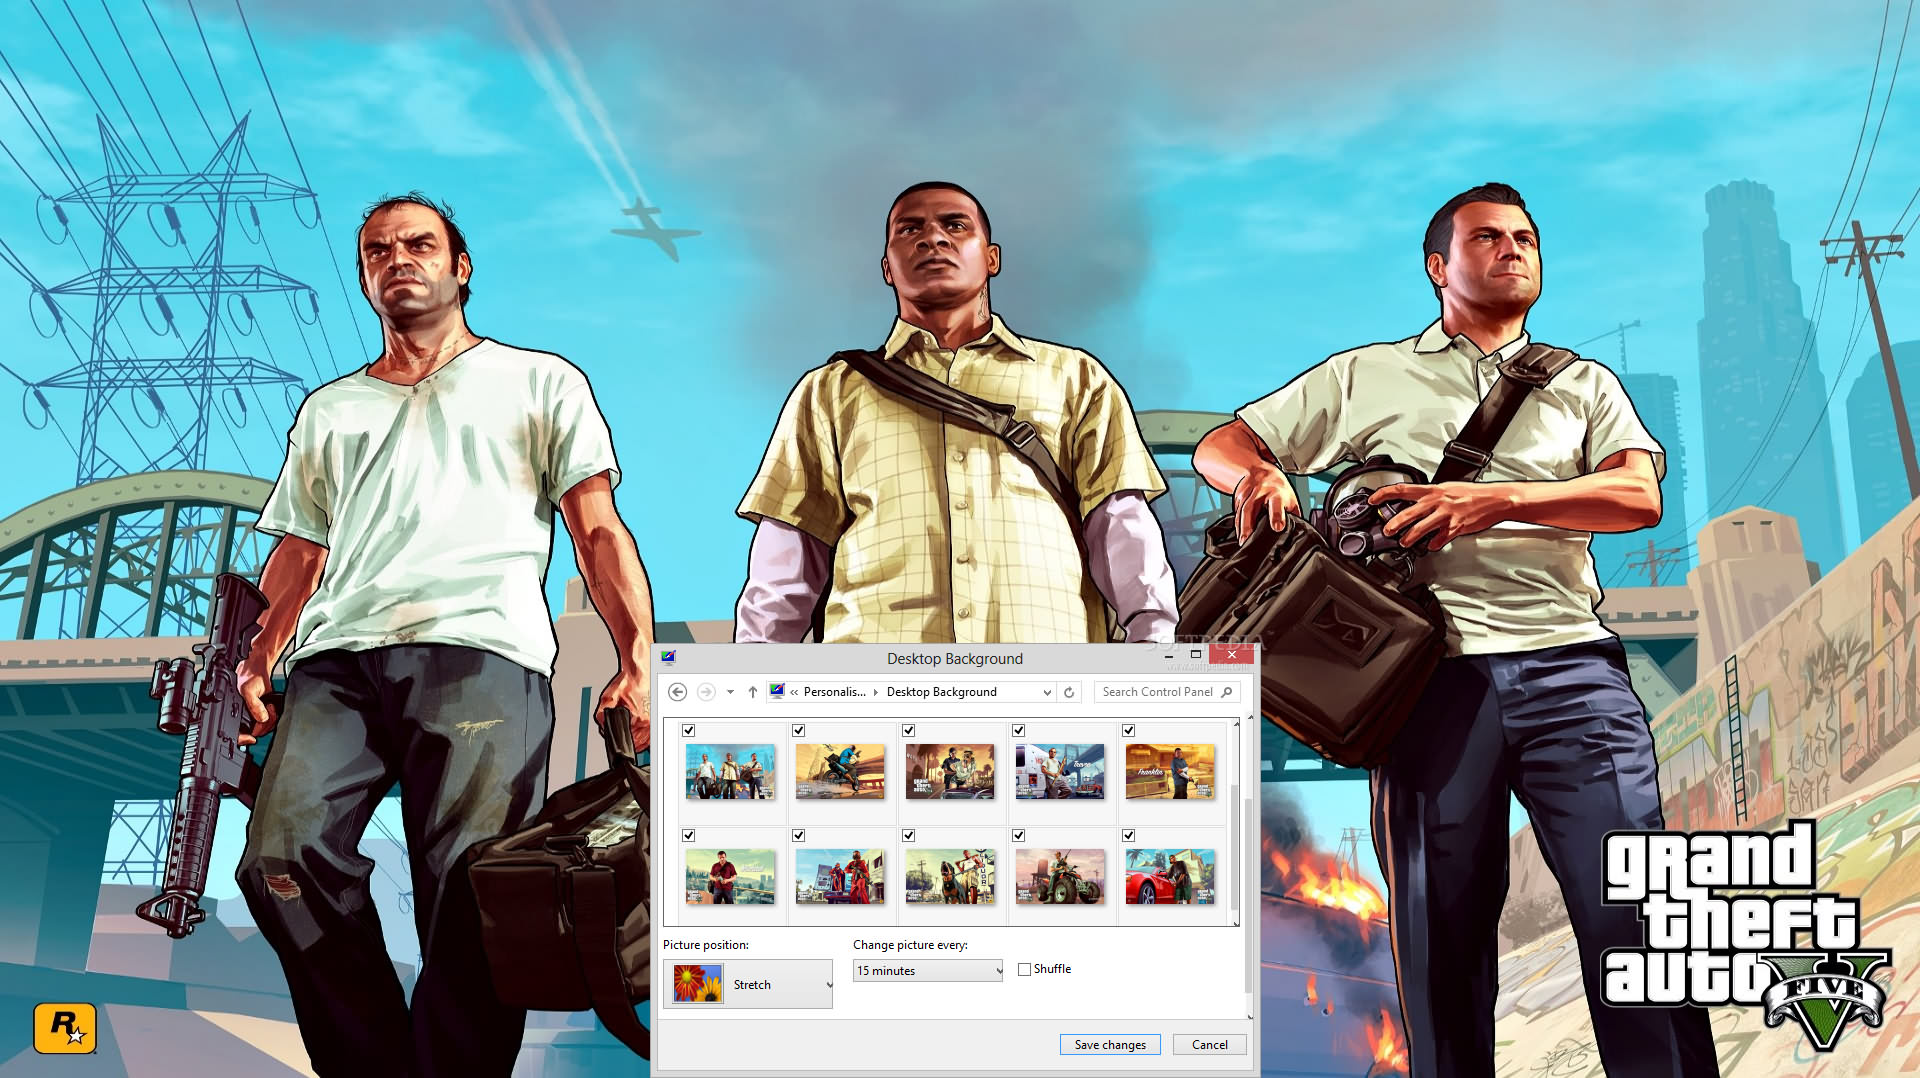 3d Hd Wallpapers For Windows 7 Free Download Download Grand Theft Auto V Windows 7 Theme 1 00